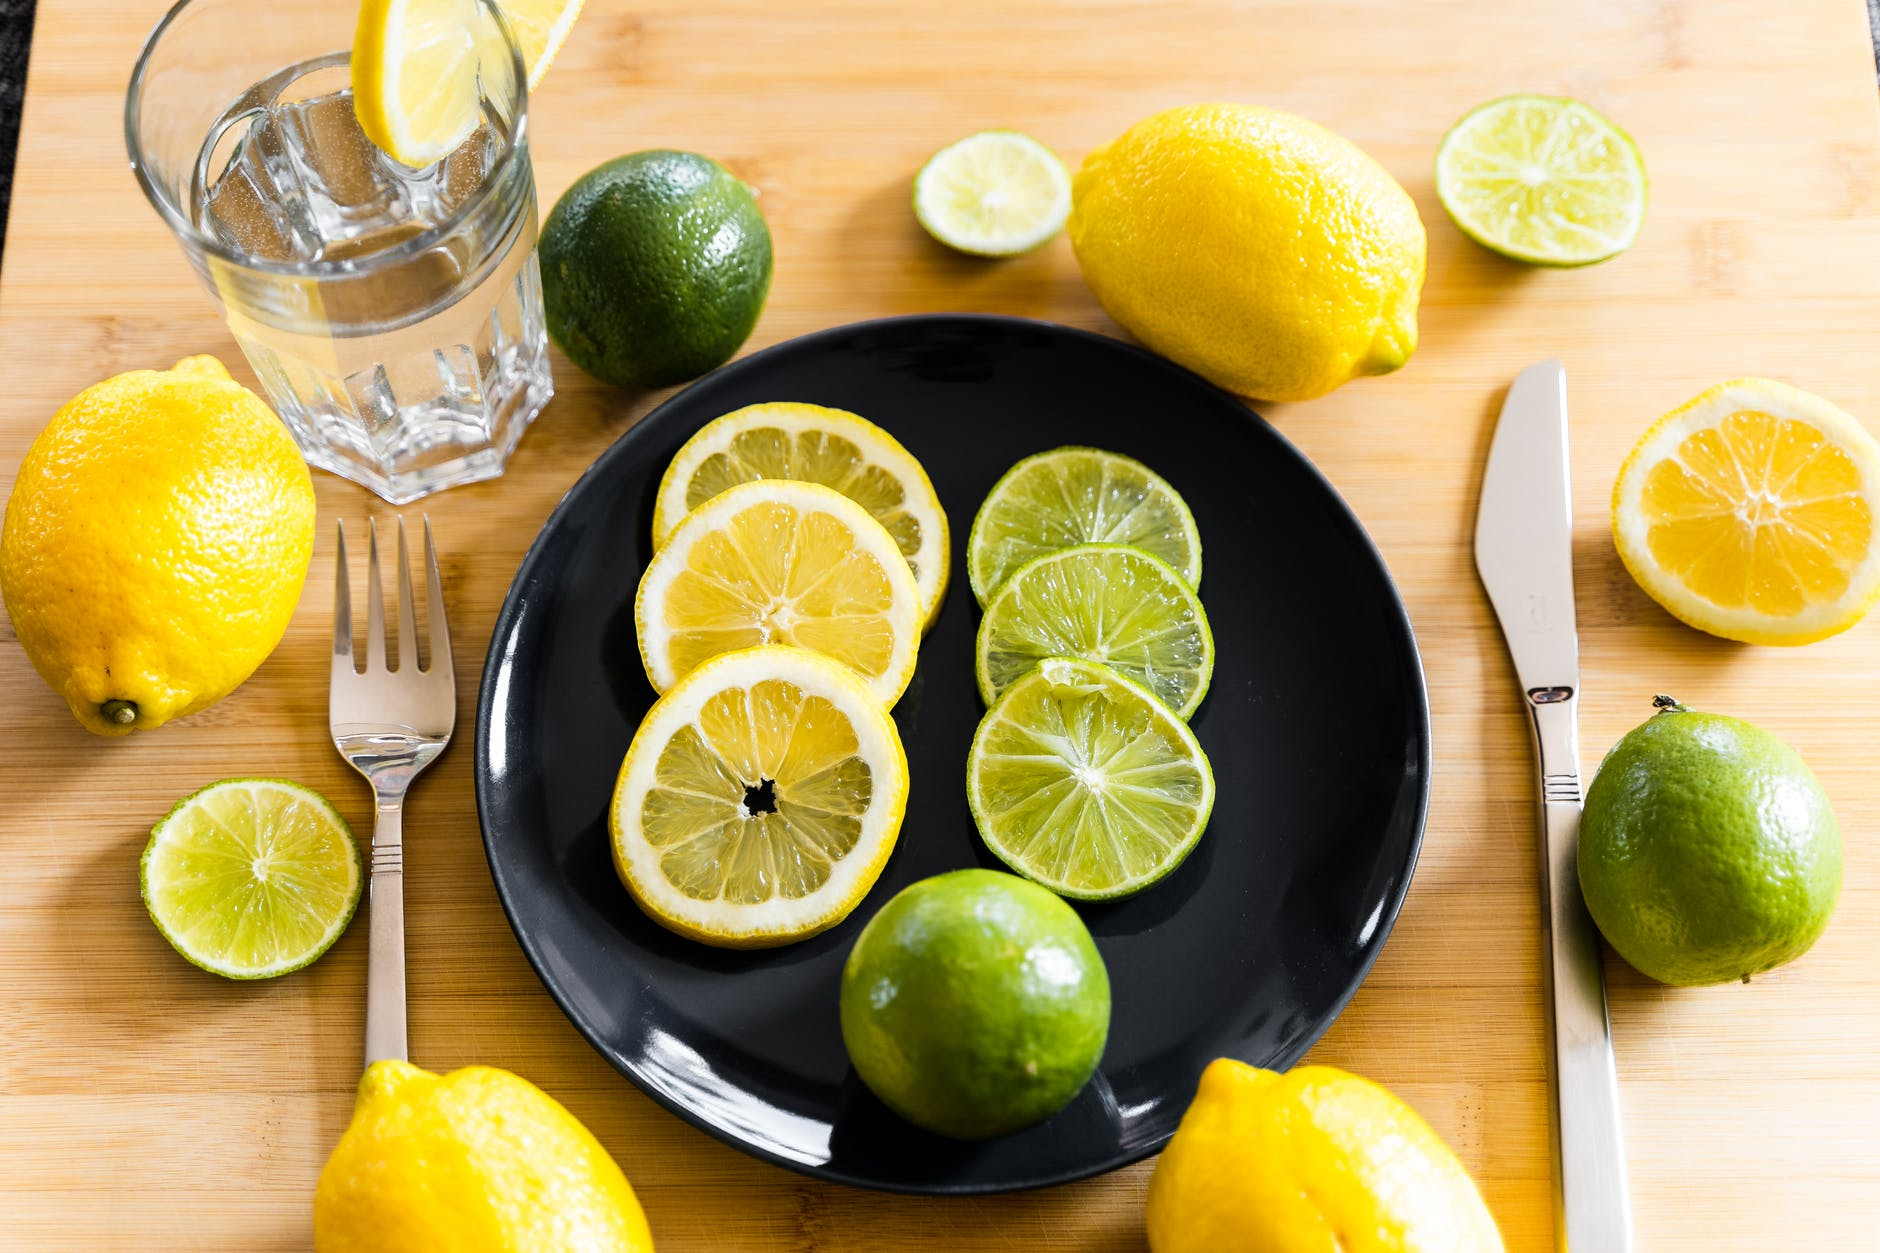 fresh lemons and limes arranged on table with plate and water glass